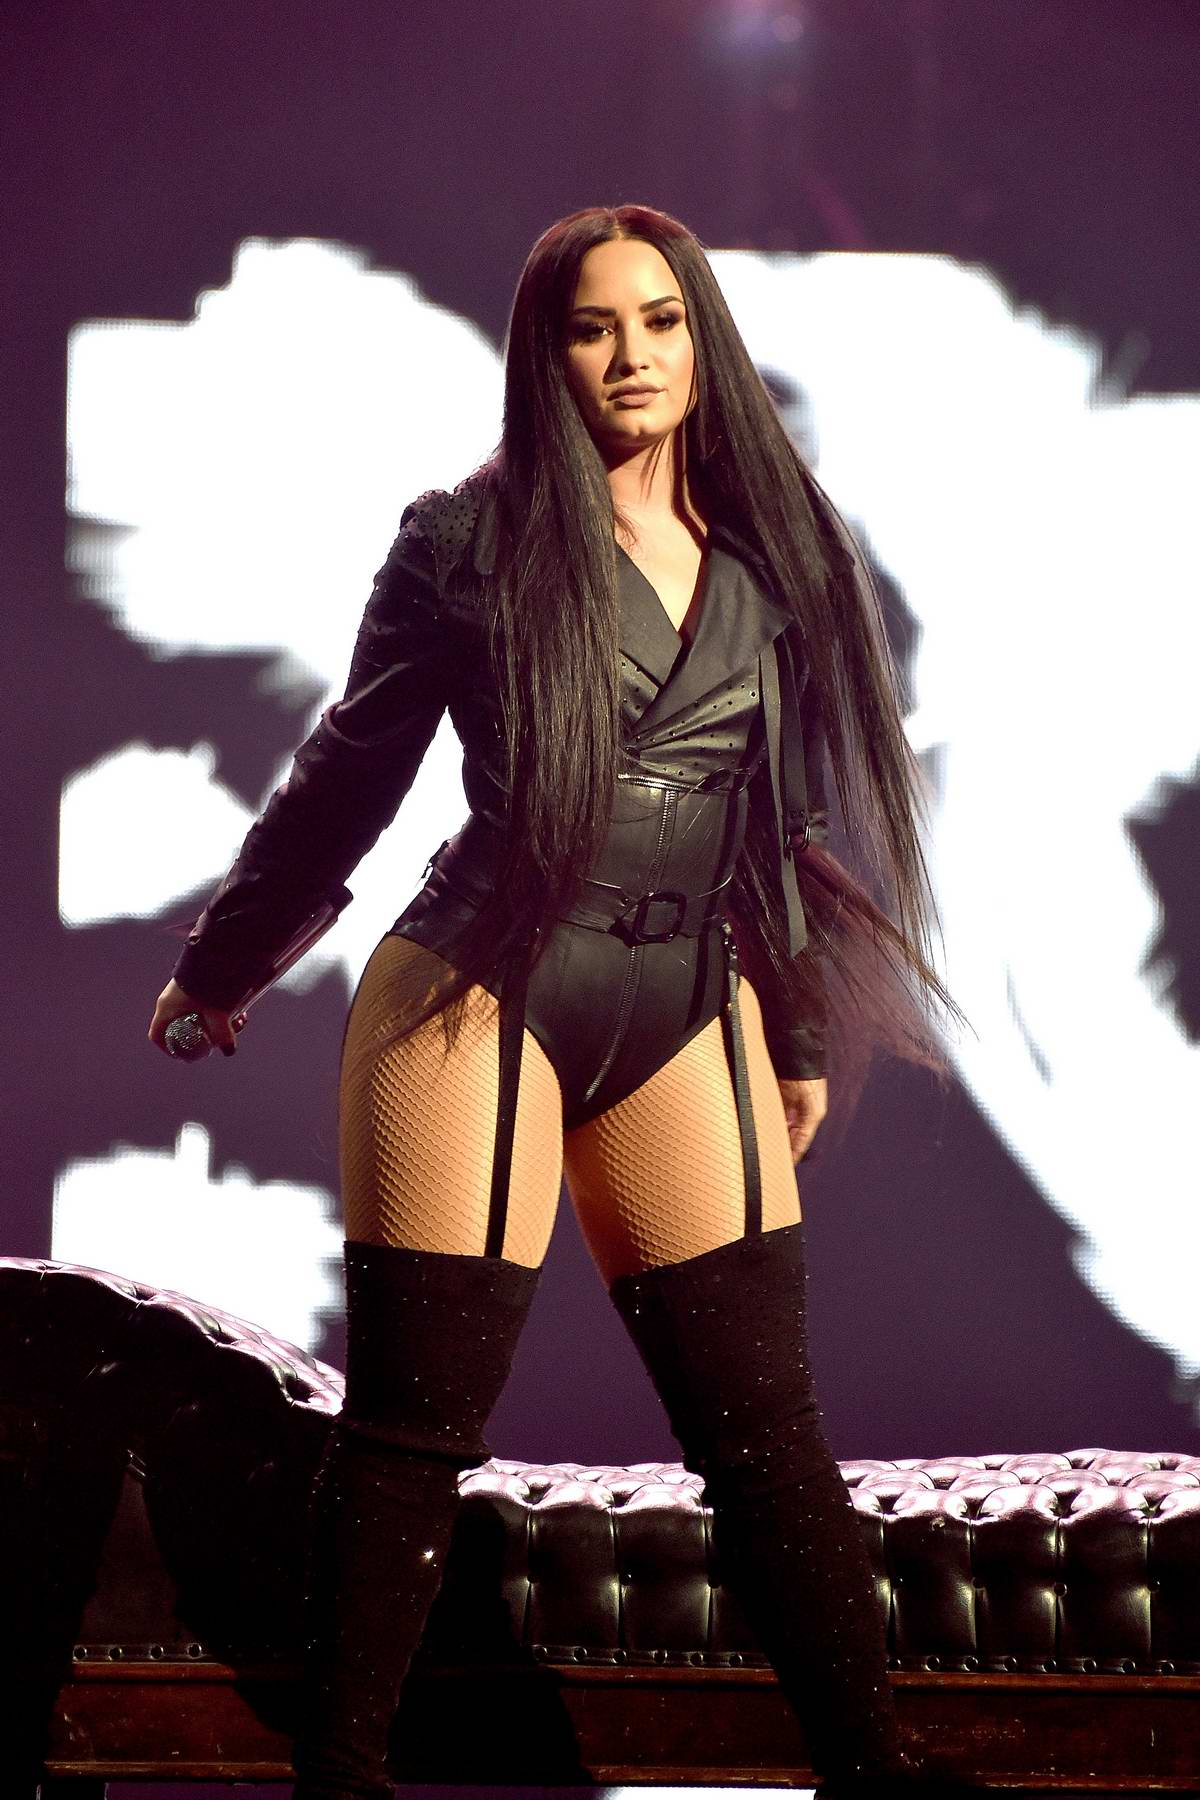 Demi Lovato performs live on 'Tell Me You Love Me World Tour' at SAP Center in San Jose, California